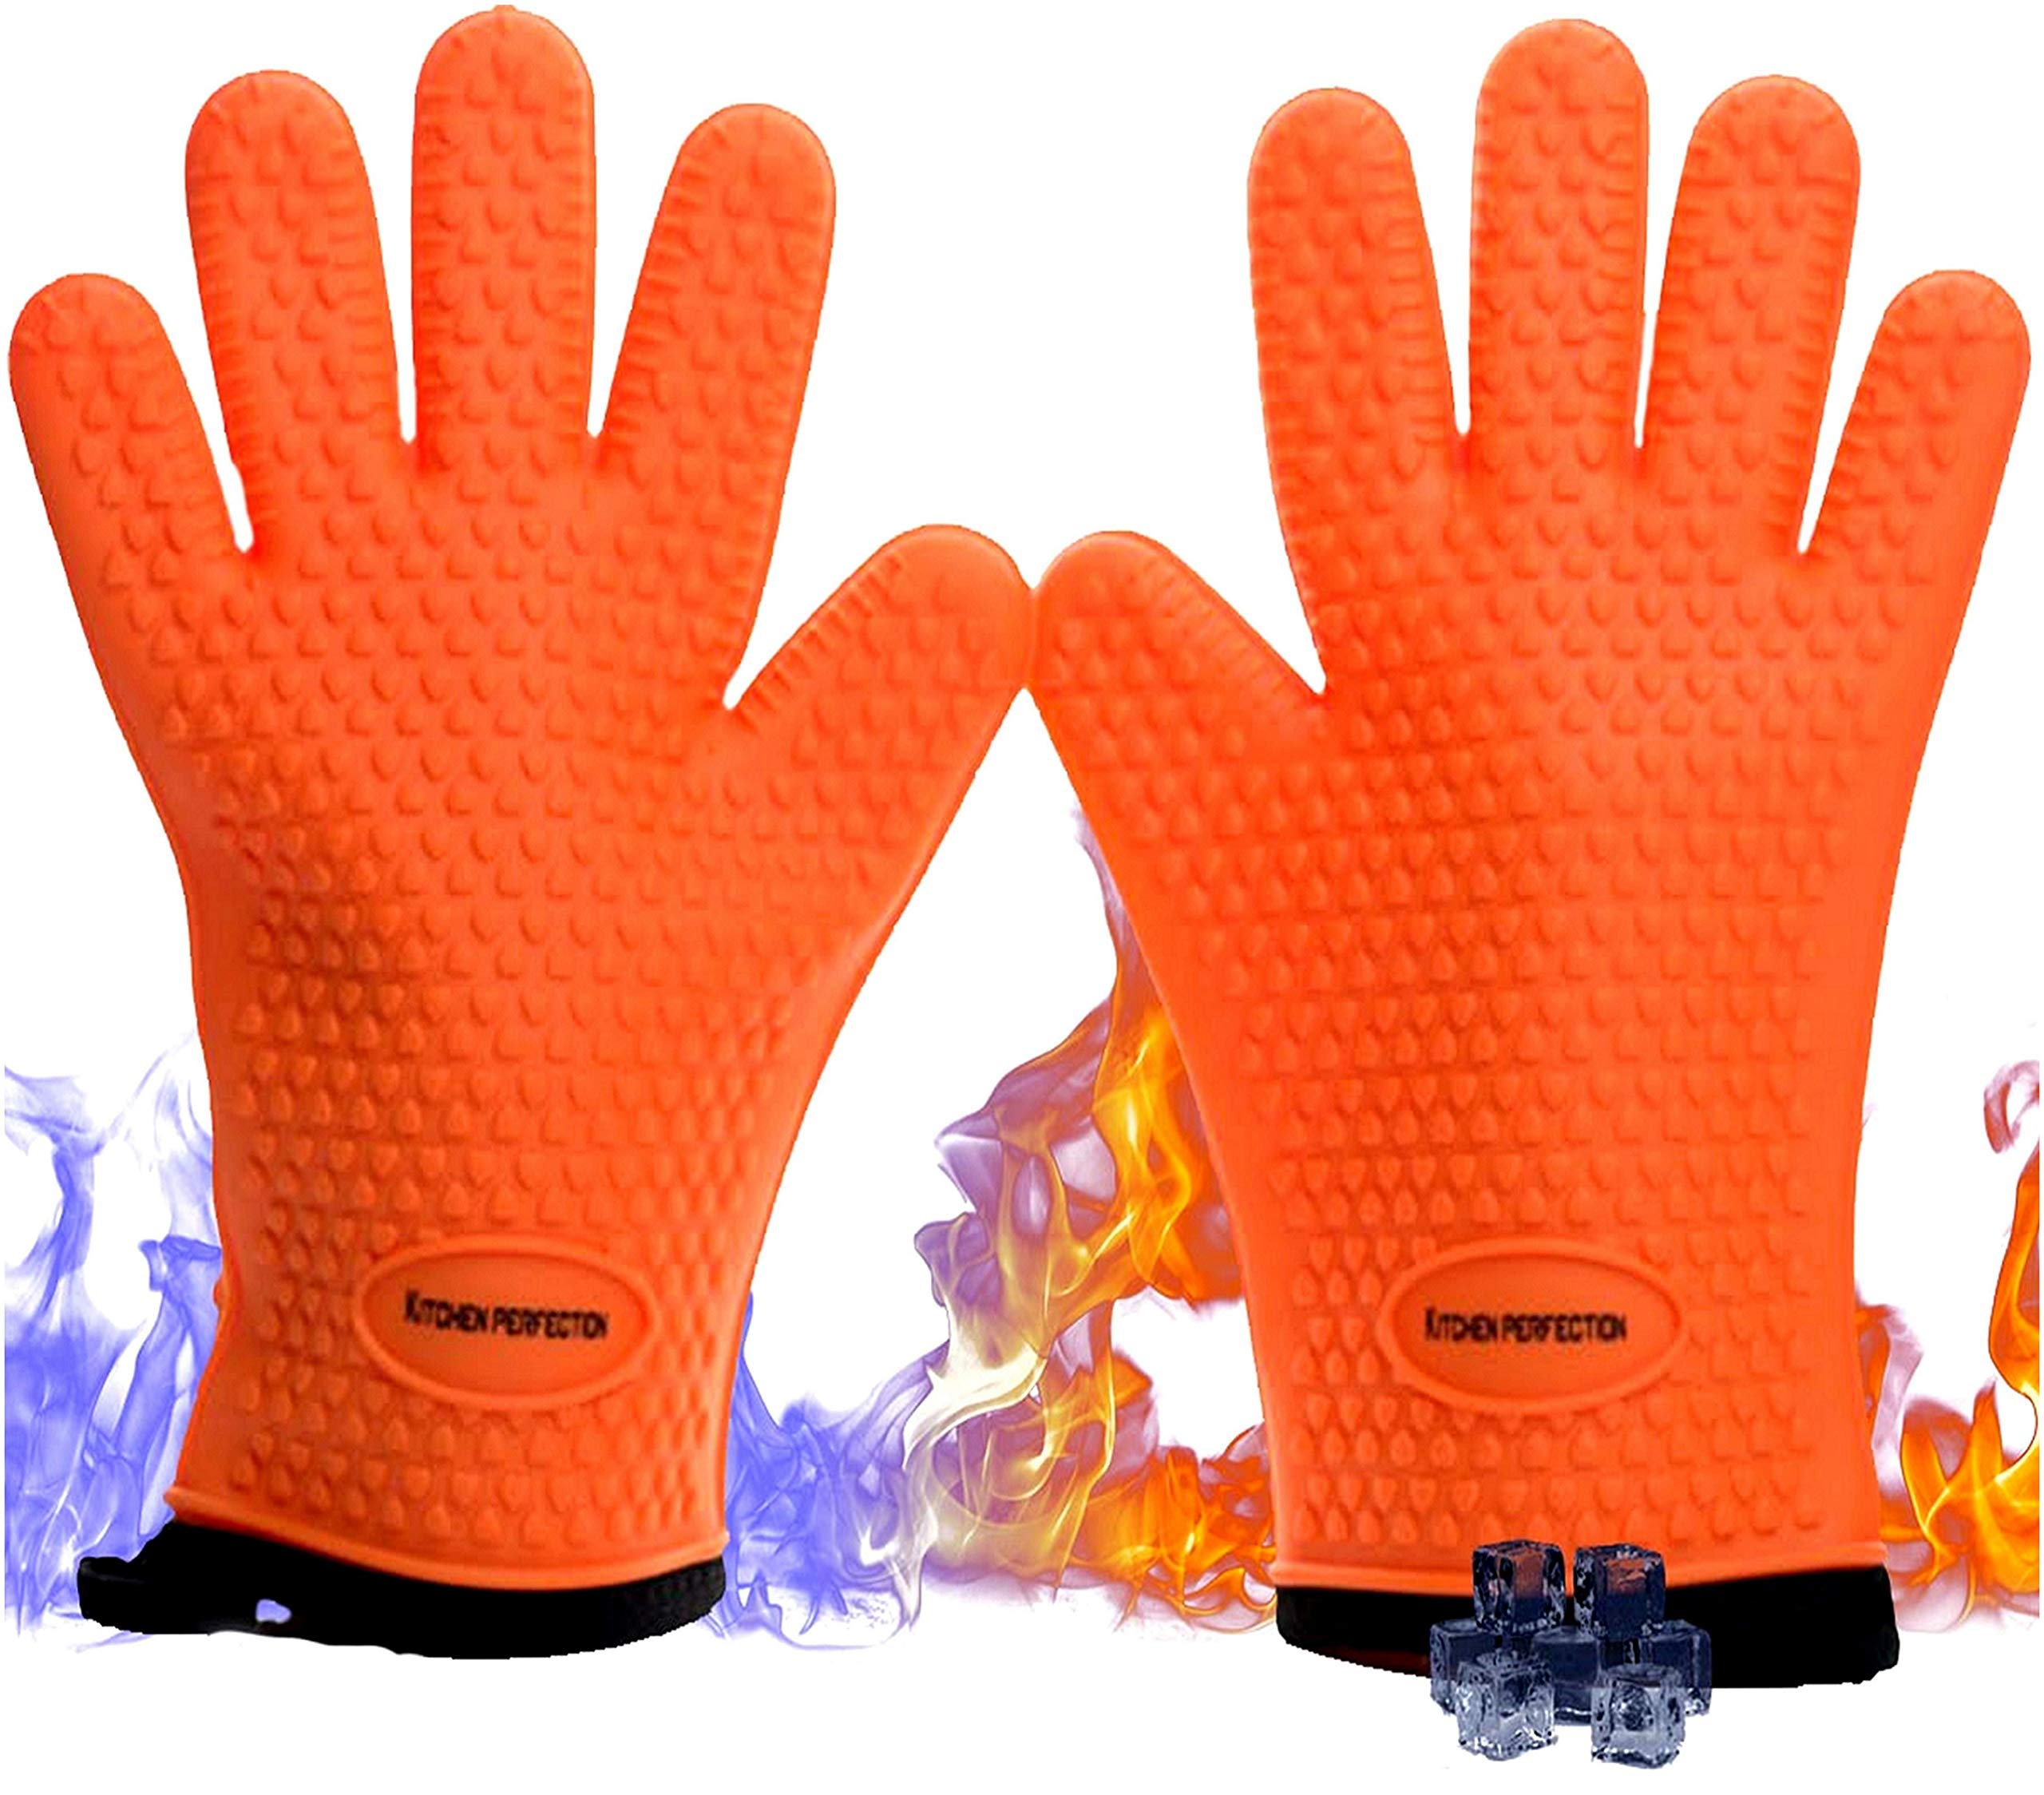 No.1 Set of Silicone Smoker Oven Gloves - Extreme Heat Resistant Washable Mitts for Safe Cooking Baking & Frying at The Kitchen,BBQ Pit & Grill. Superior Value Set + 3 Bonuses (Orange) by Kitchen perfection